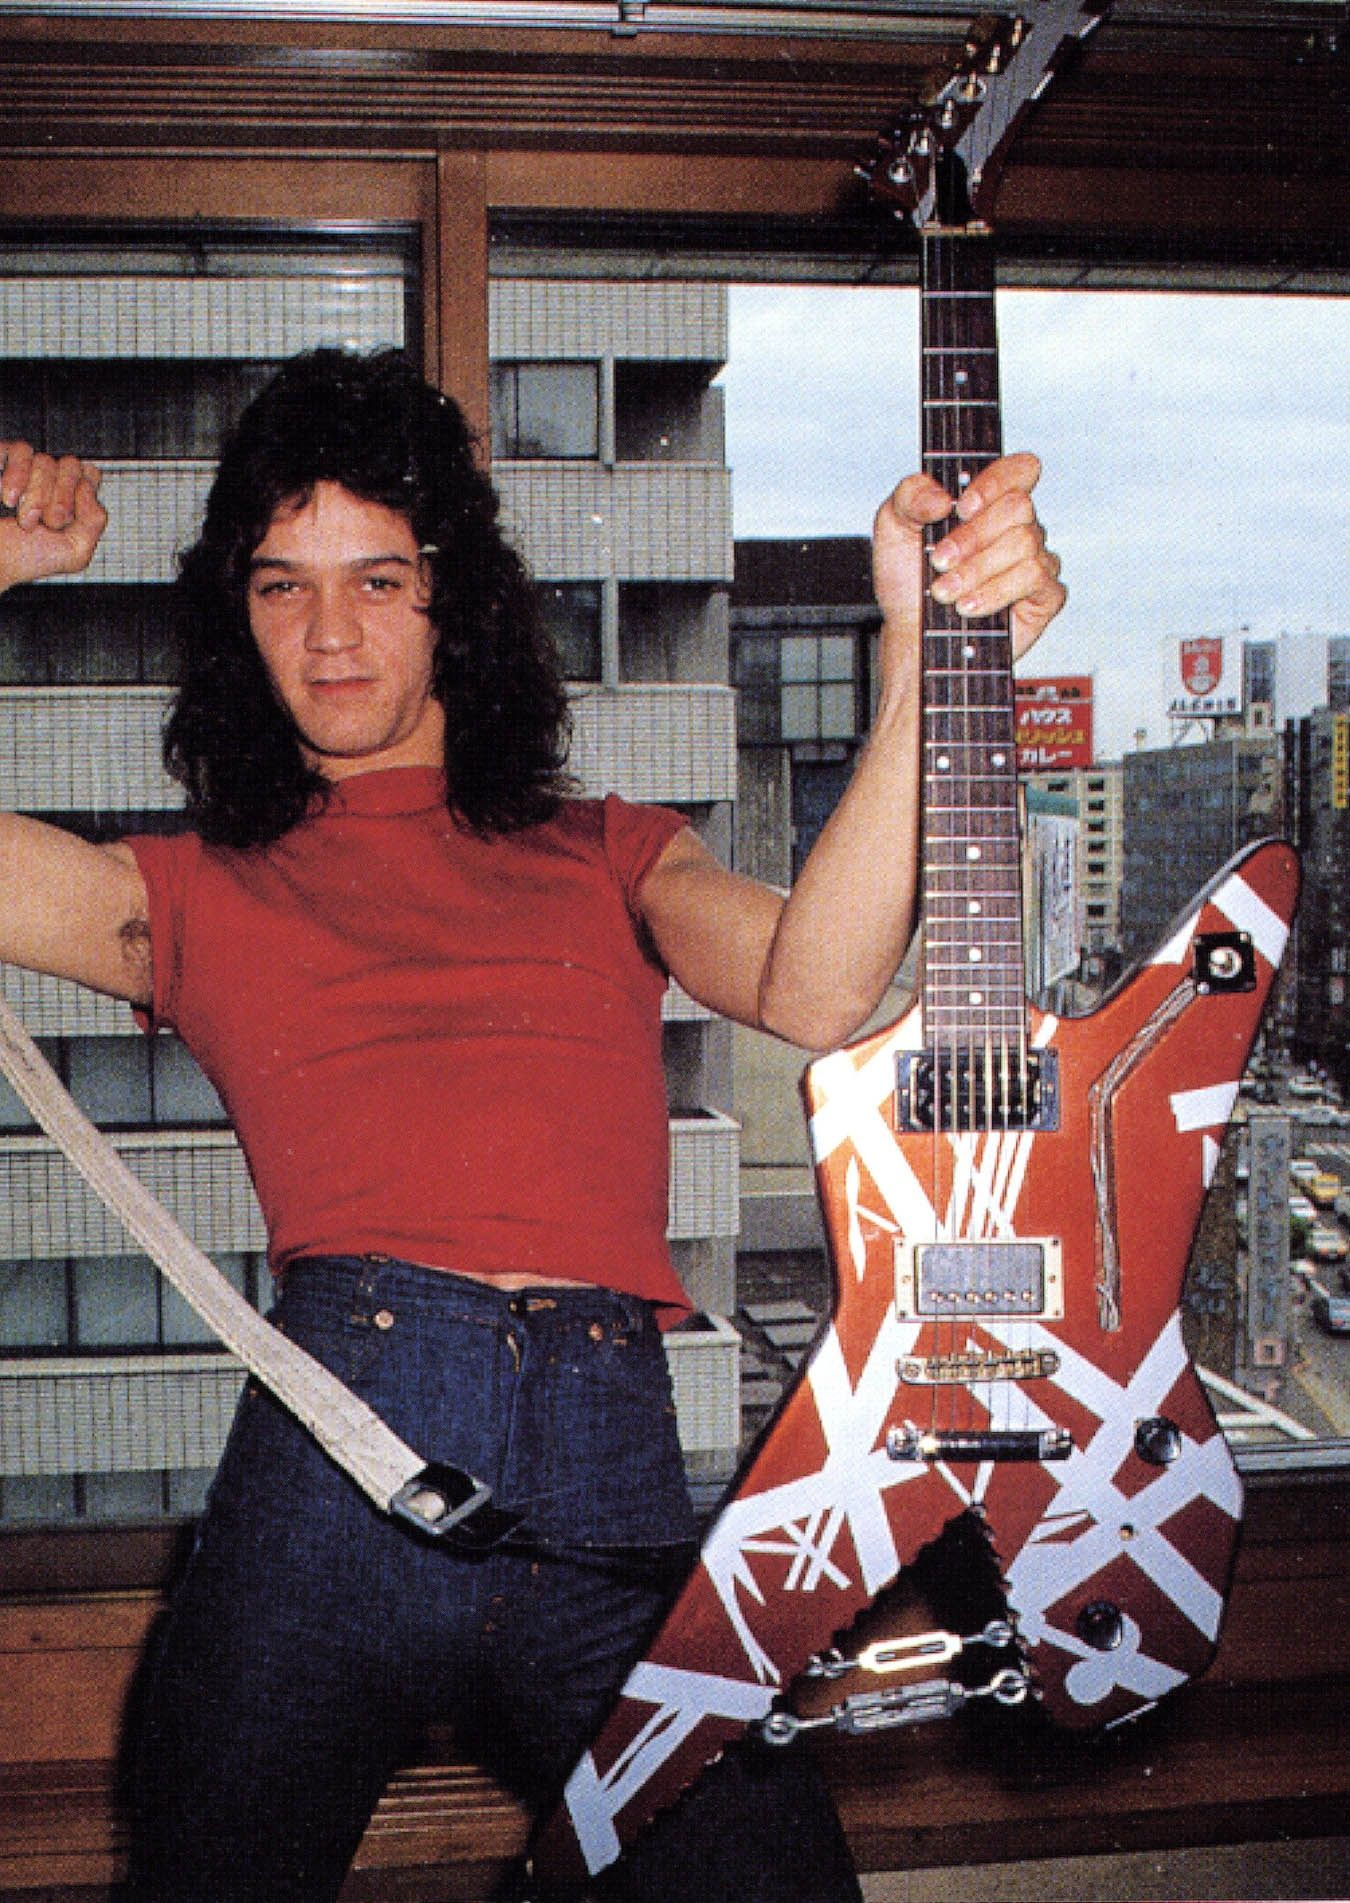 Edward Van Halen And Destroyer Guitar Eddie Van Halen Van Halen Van Halen 5150